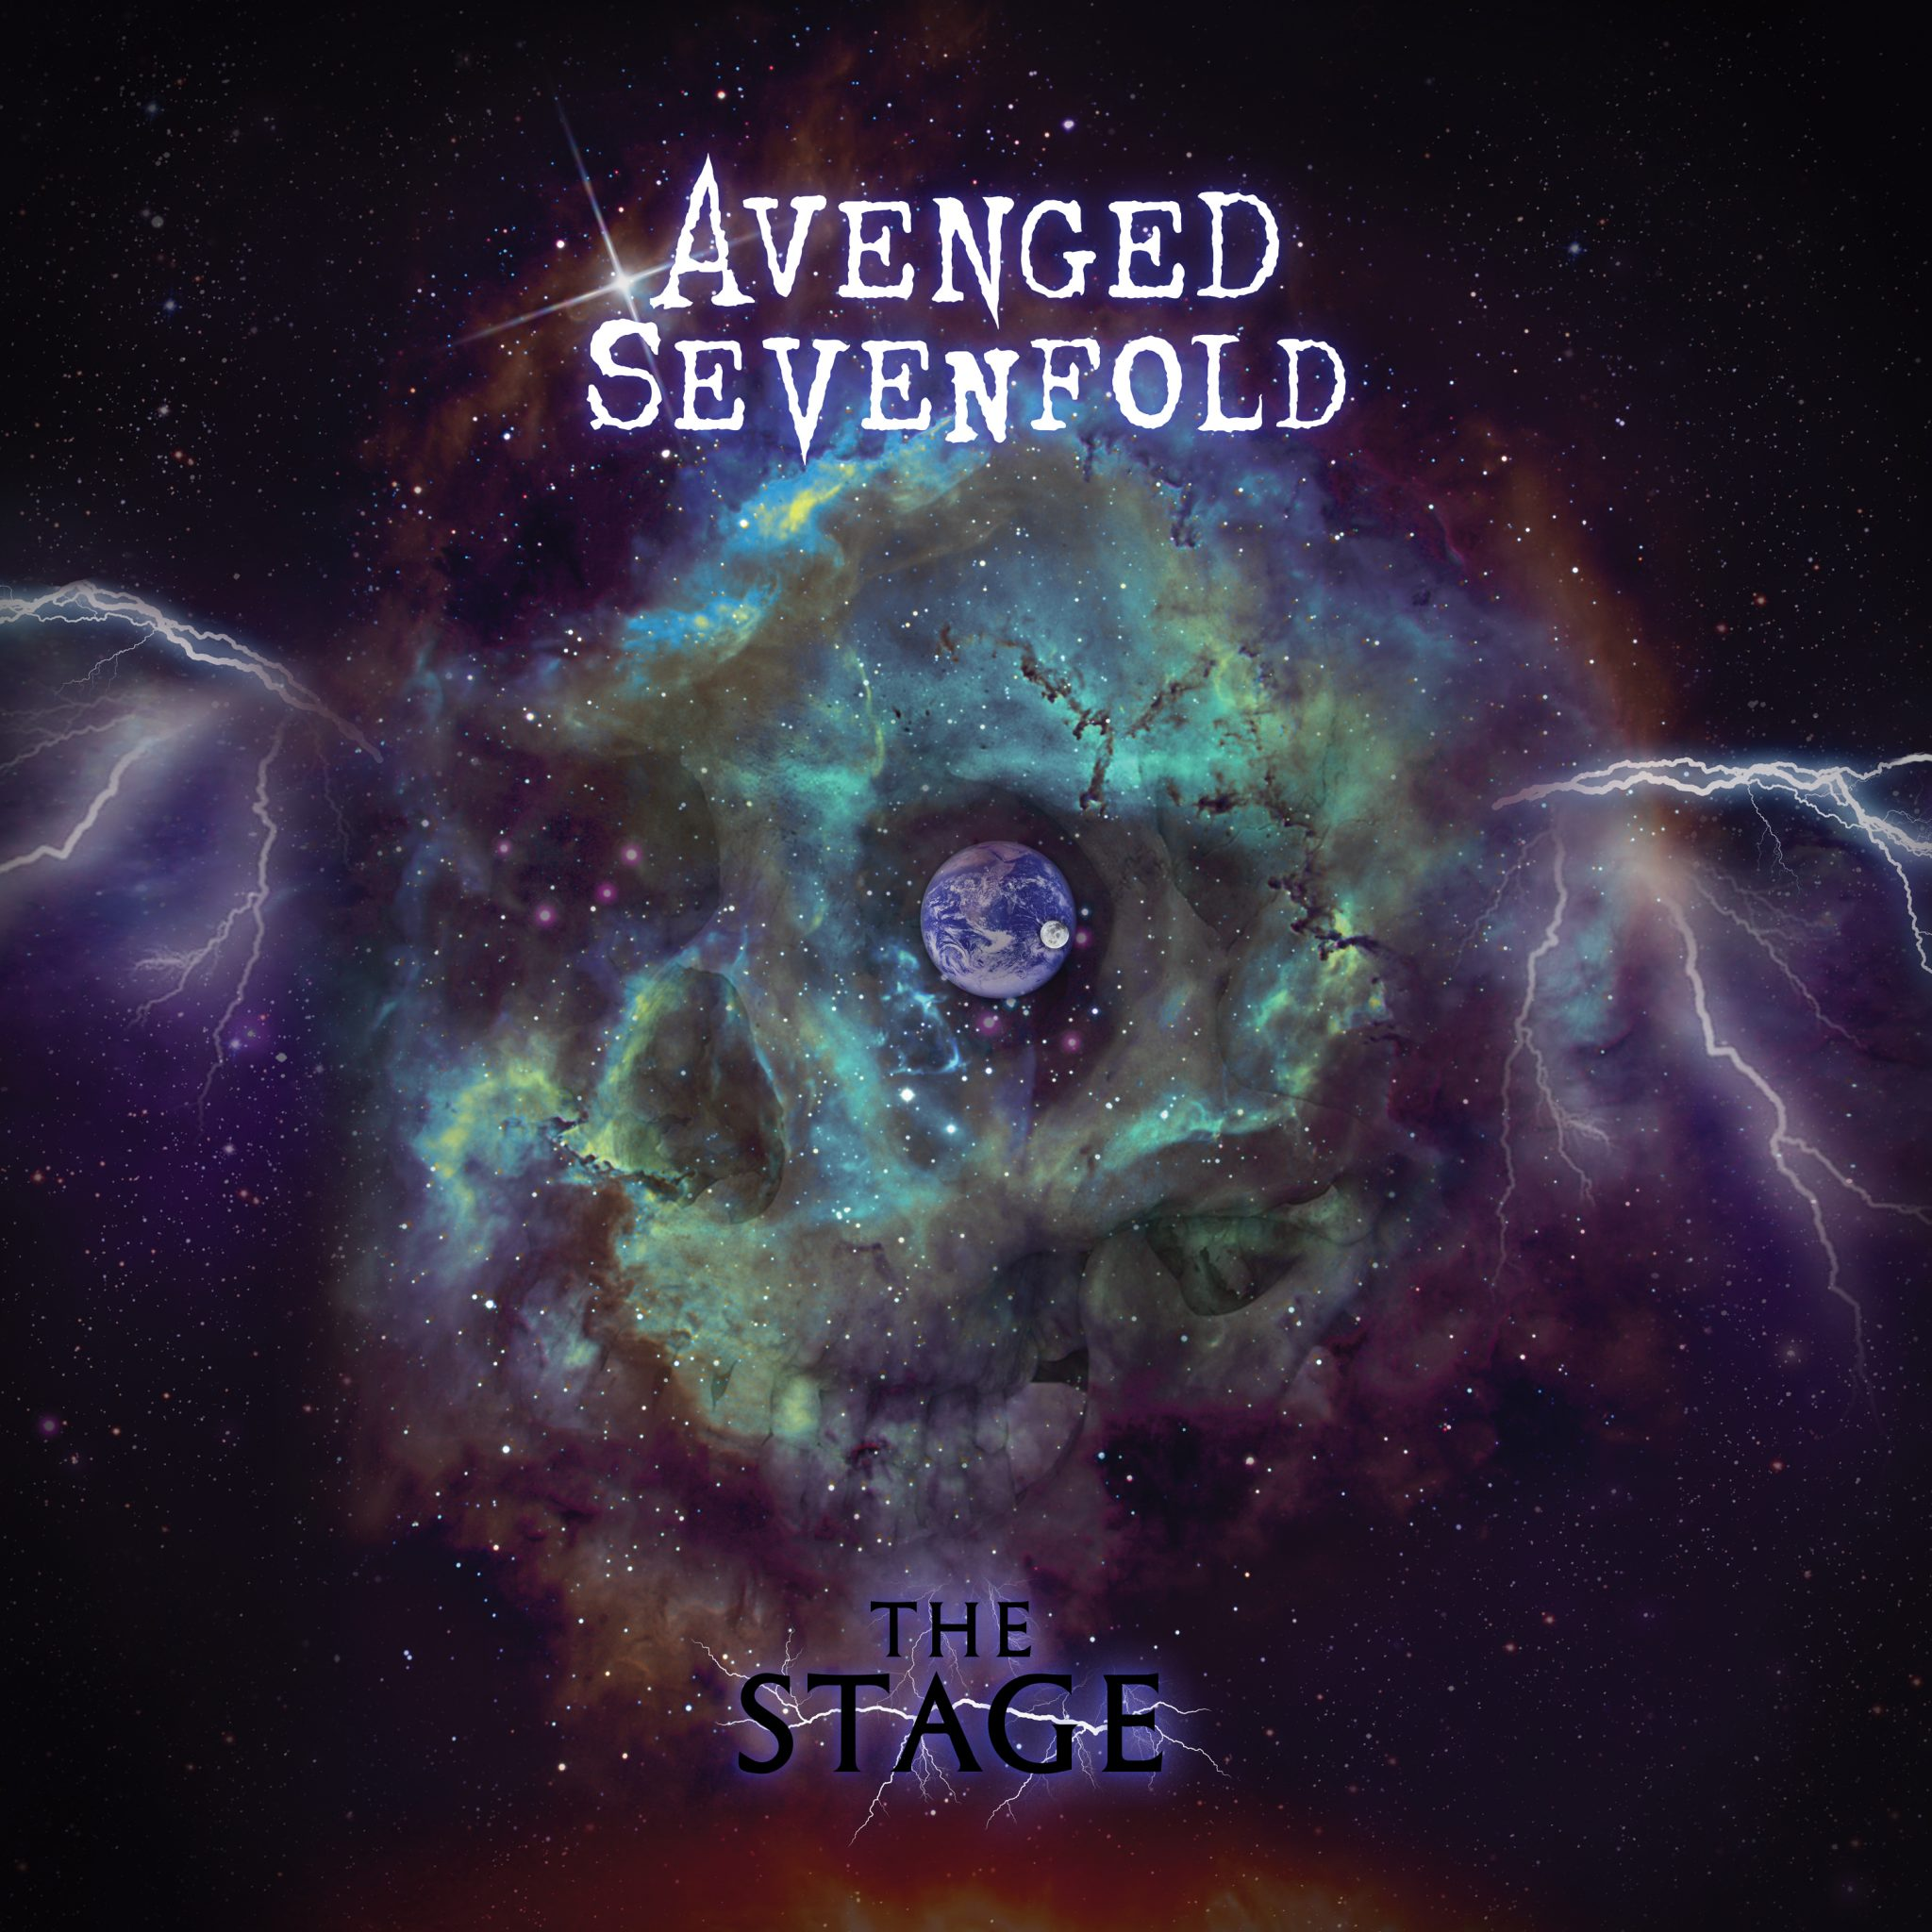 avenged sevenfold the stage album cover full size. Black Bedroom Furniture Sets. Home Design Ideas